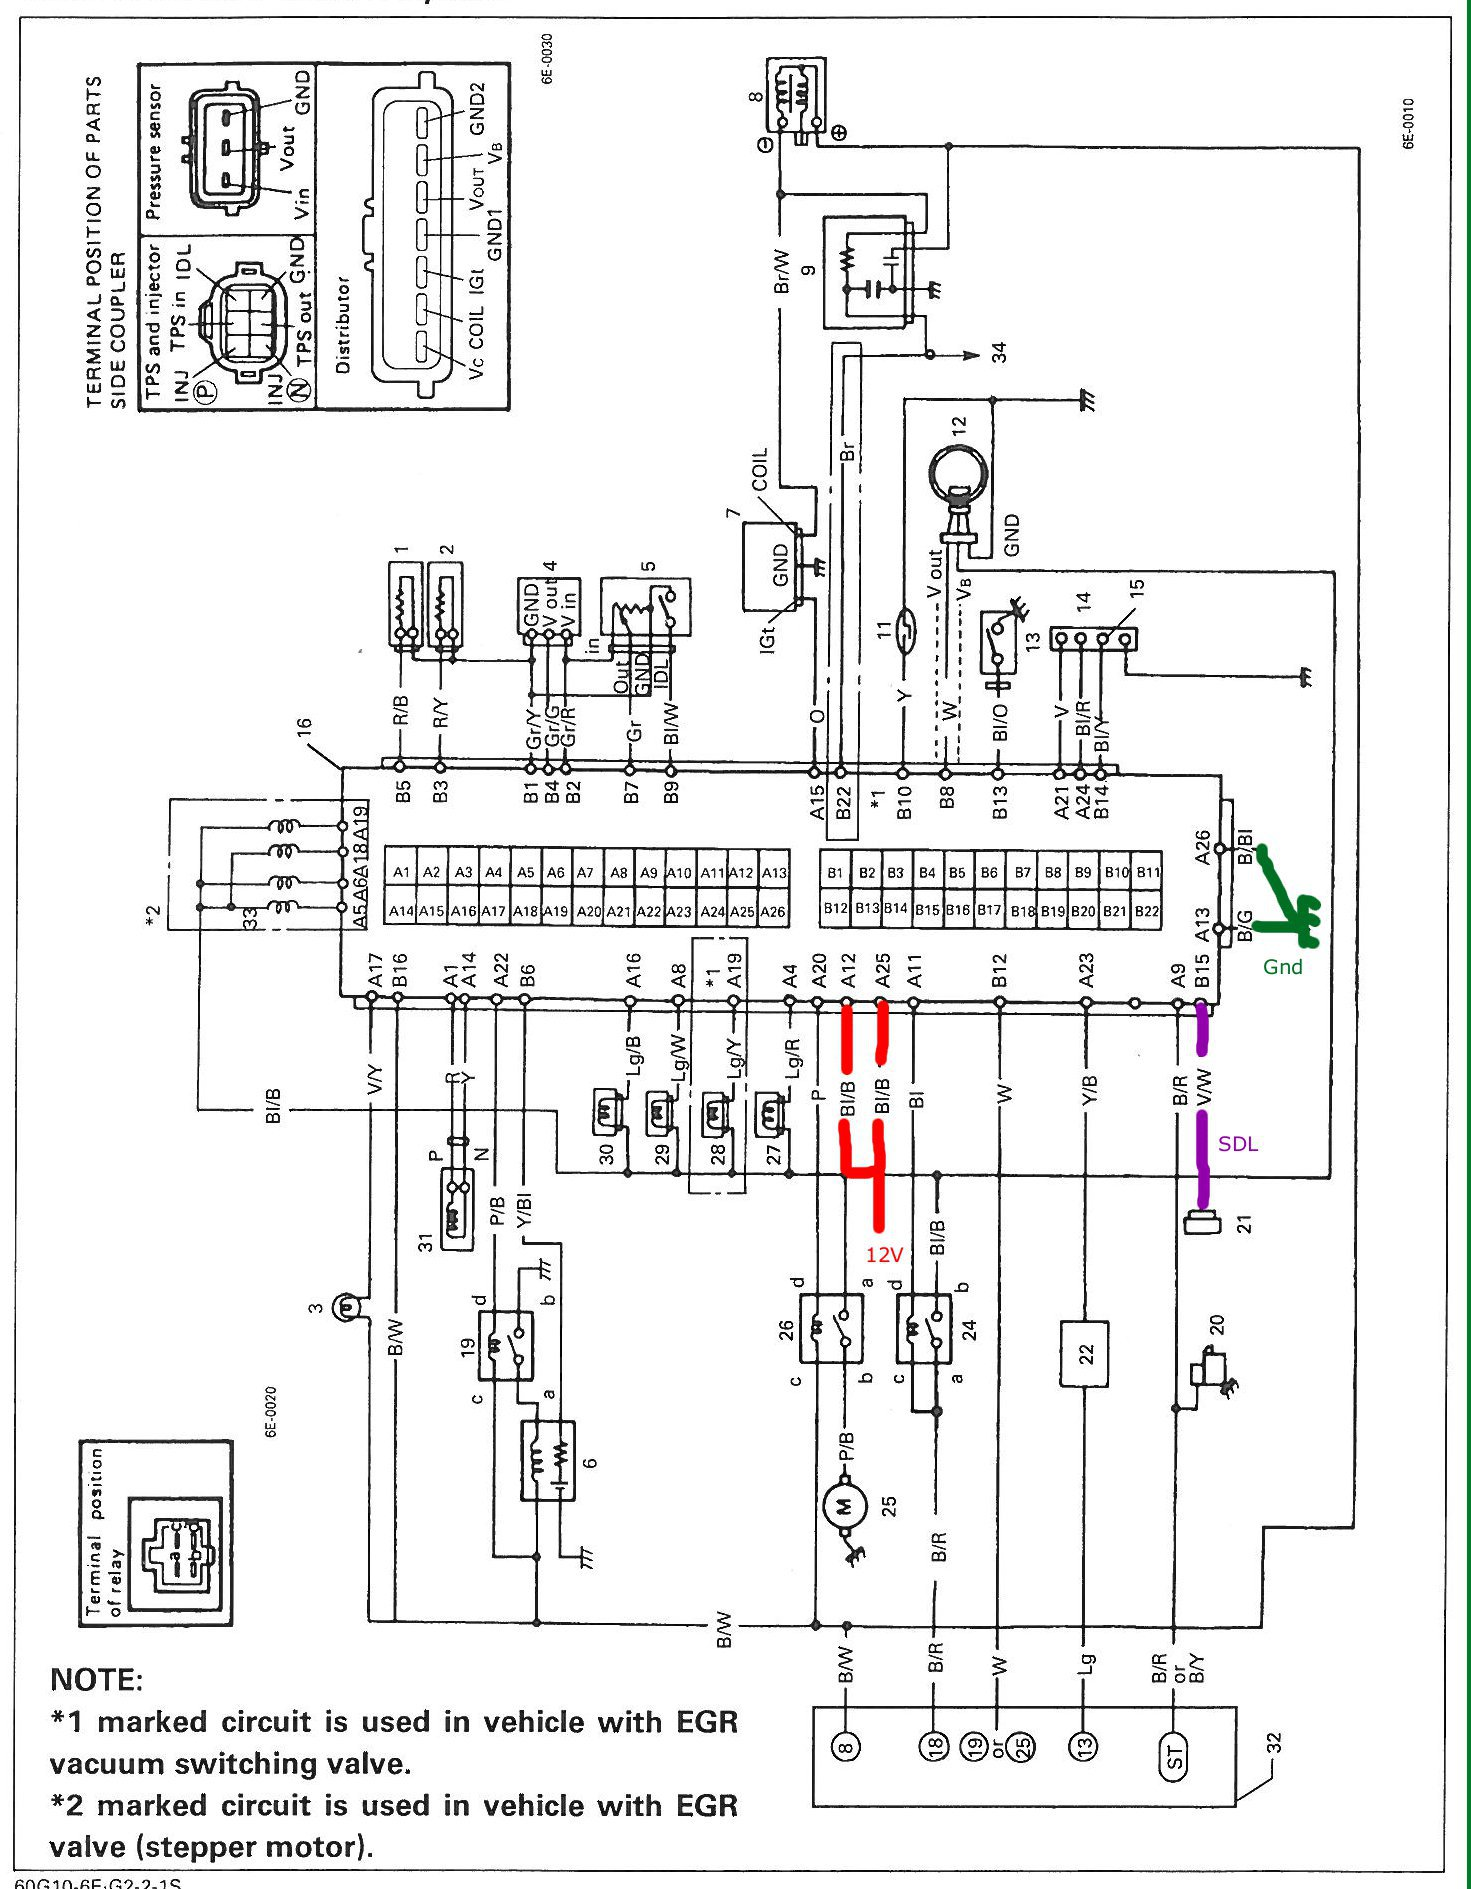 ae 82 toyota corolla wiring diagram  ae  free engine image for user manual download